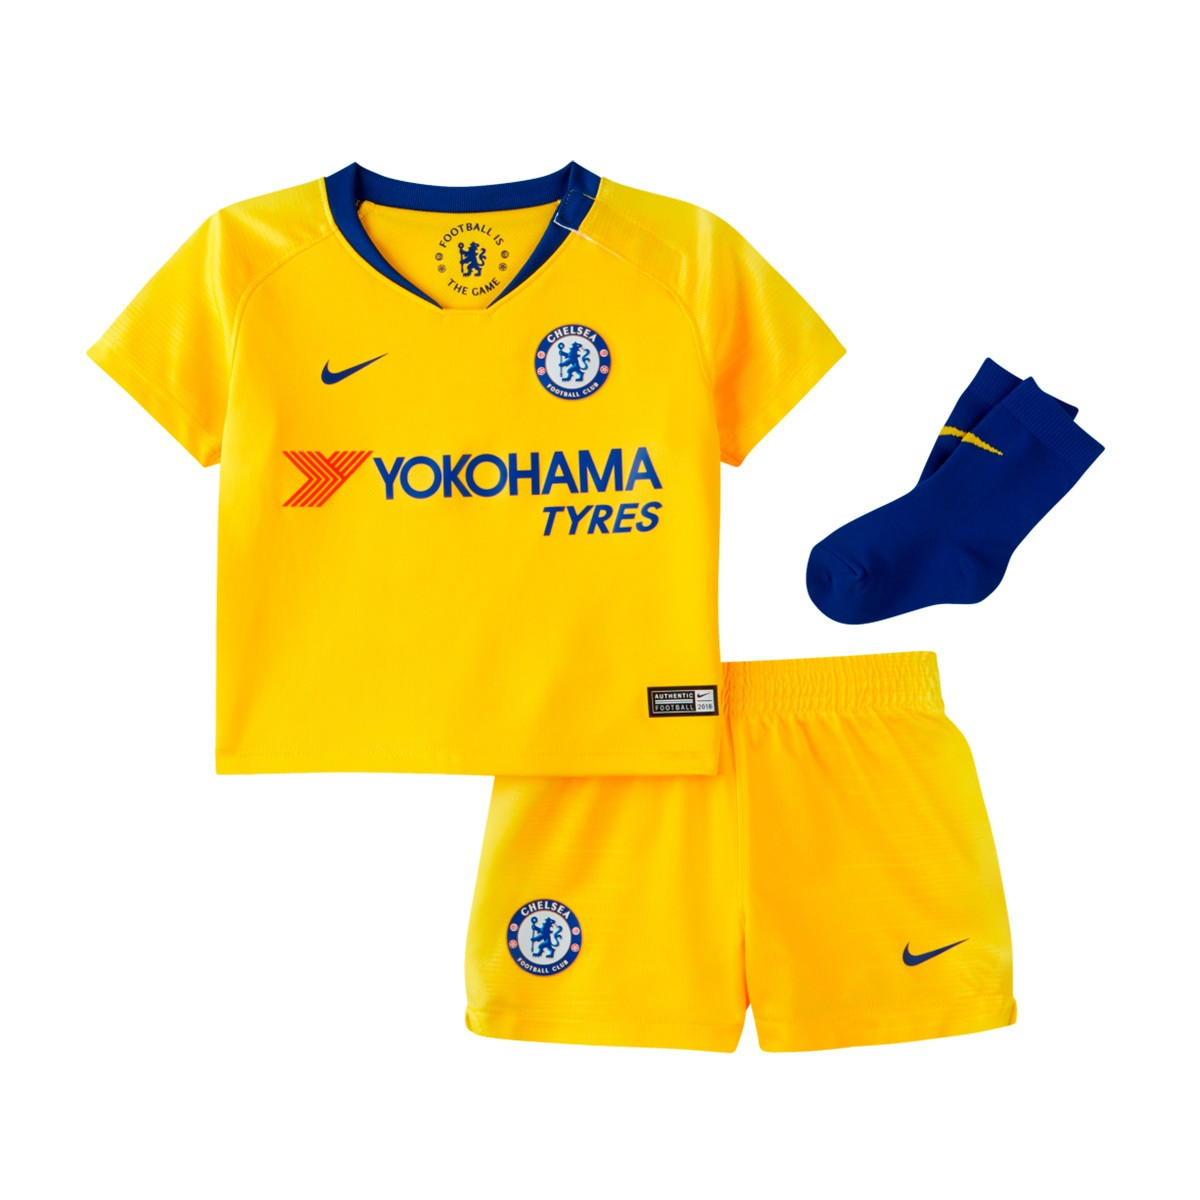 best website 8c5e9 e3e4c Conjunto Bebé Chelsea FC Segunda Equipación 2018-2019 Tour yellow-Rush blue